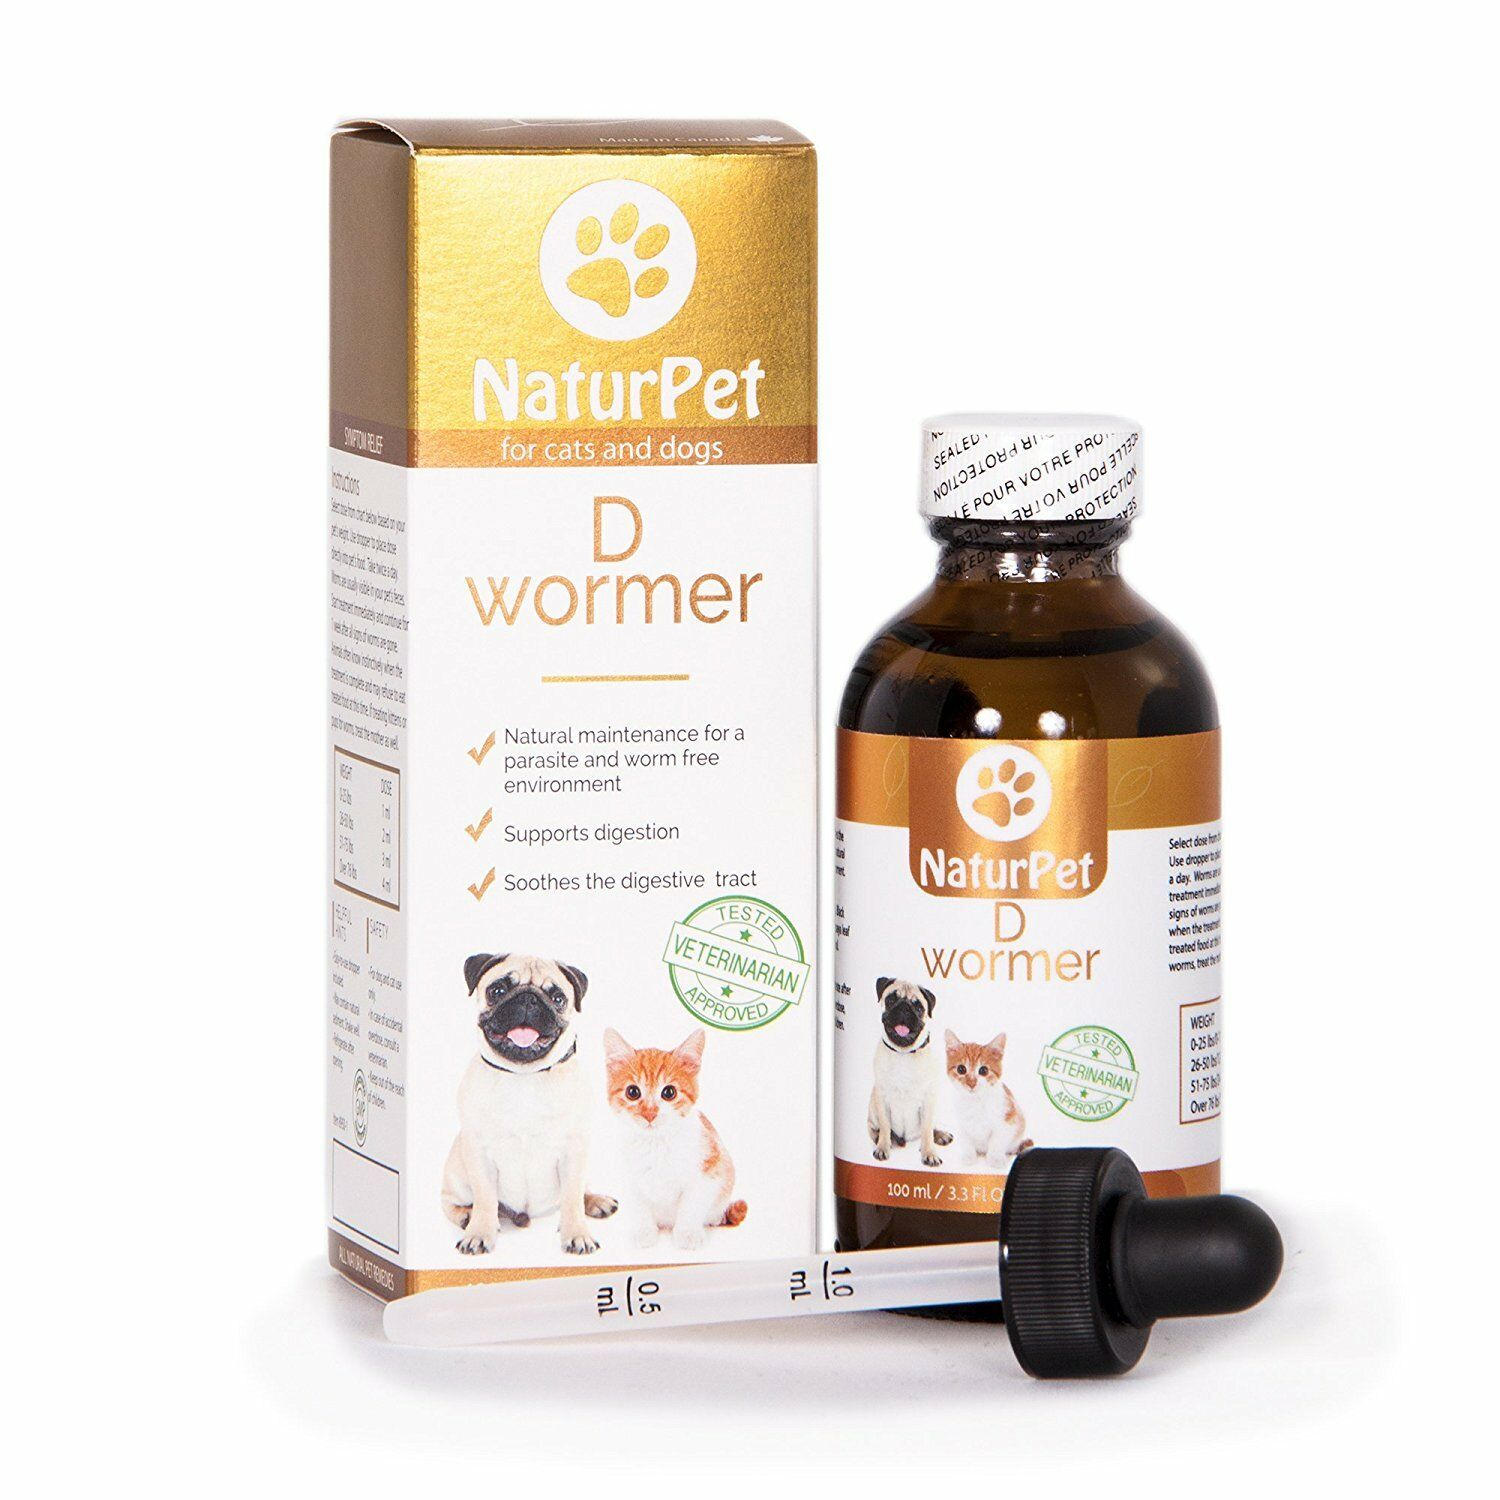 Naturpet D Wormer 100% 100% 100% Natural, Safe, & Effective Dewormer for Dogs and Cats 3506f3